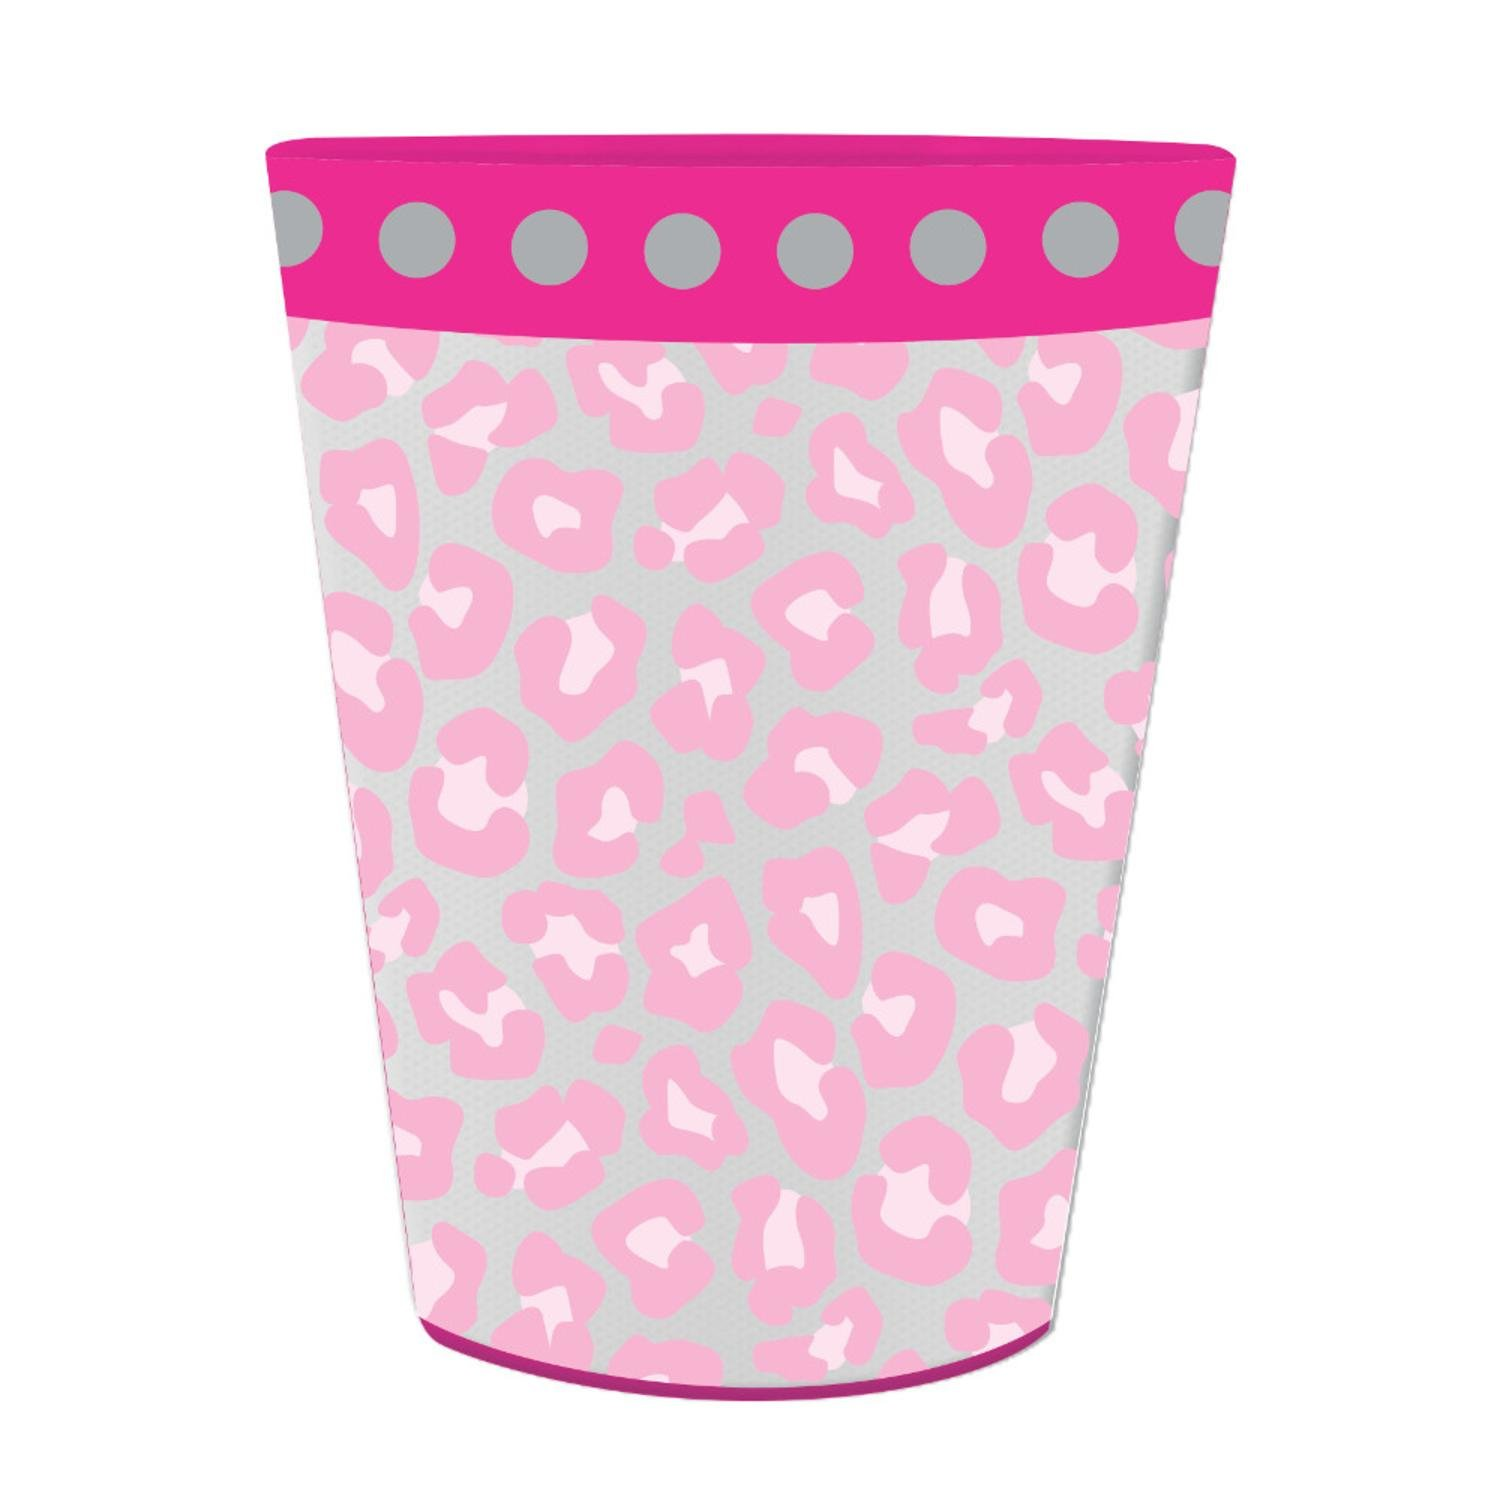 Club Pack of 12 Sparkle Spa Party! Plastic Birthday Keepsake Cups 16oz.